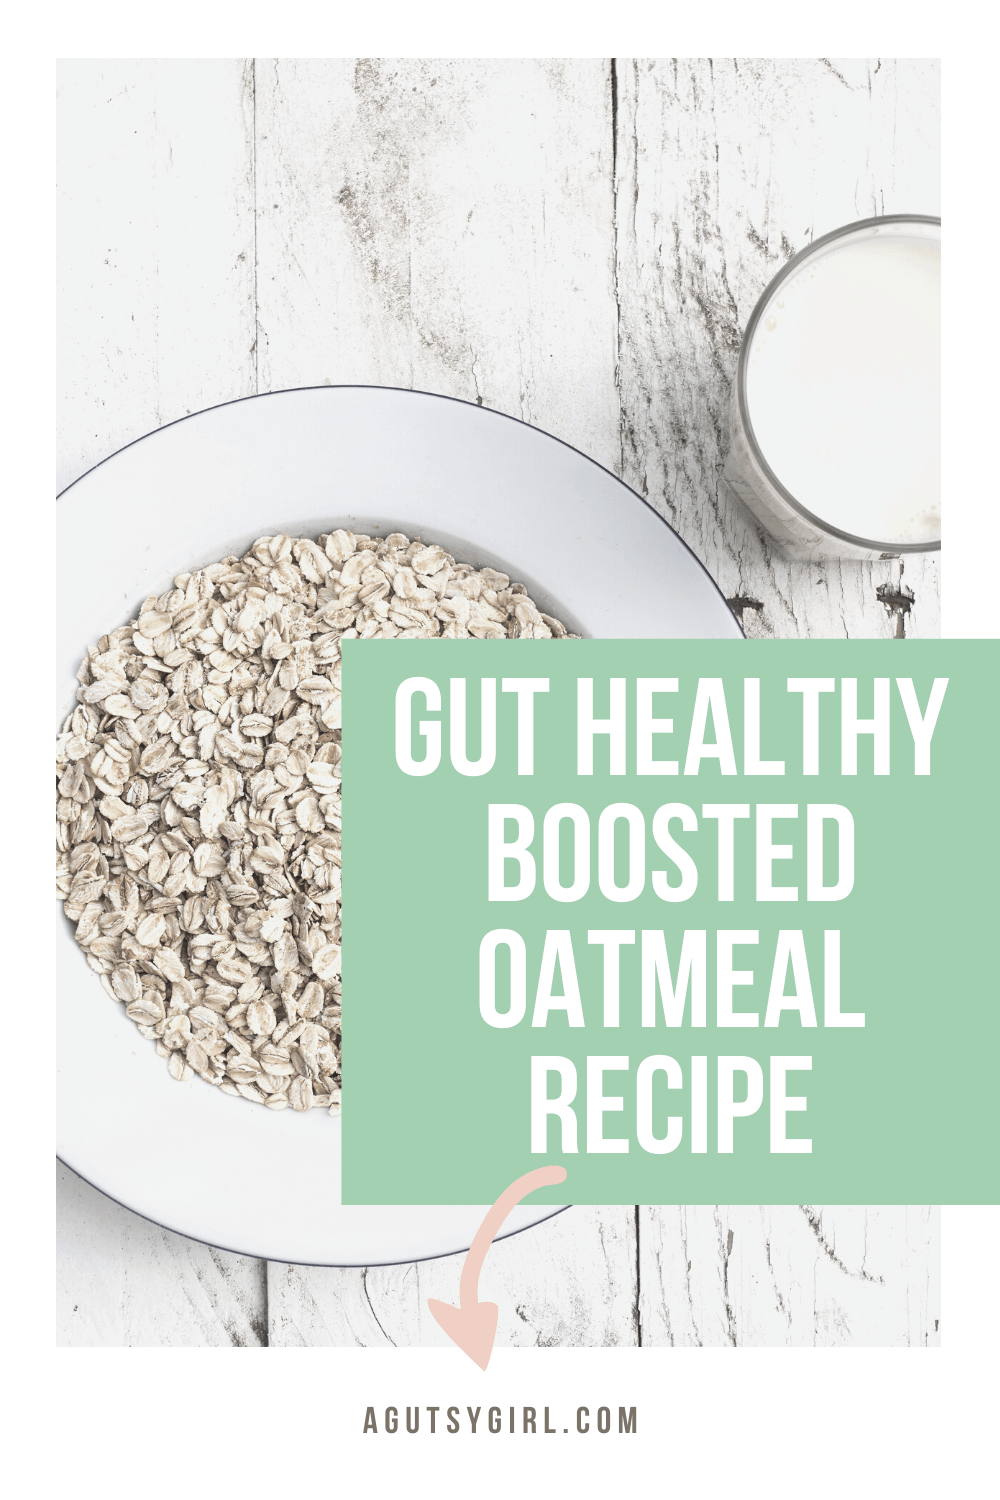 Gut Healthy Boosted Oatmeal Recipe agutsygirl.com #guthealth #oatmeal #supplements supplement